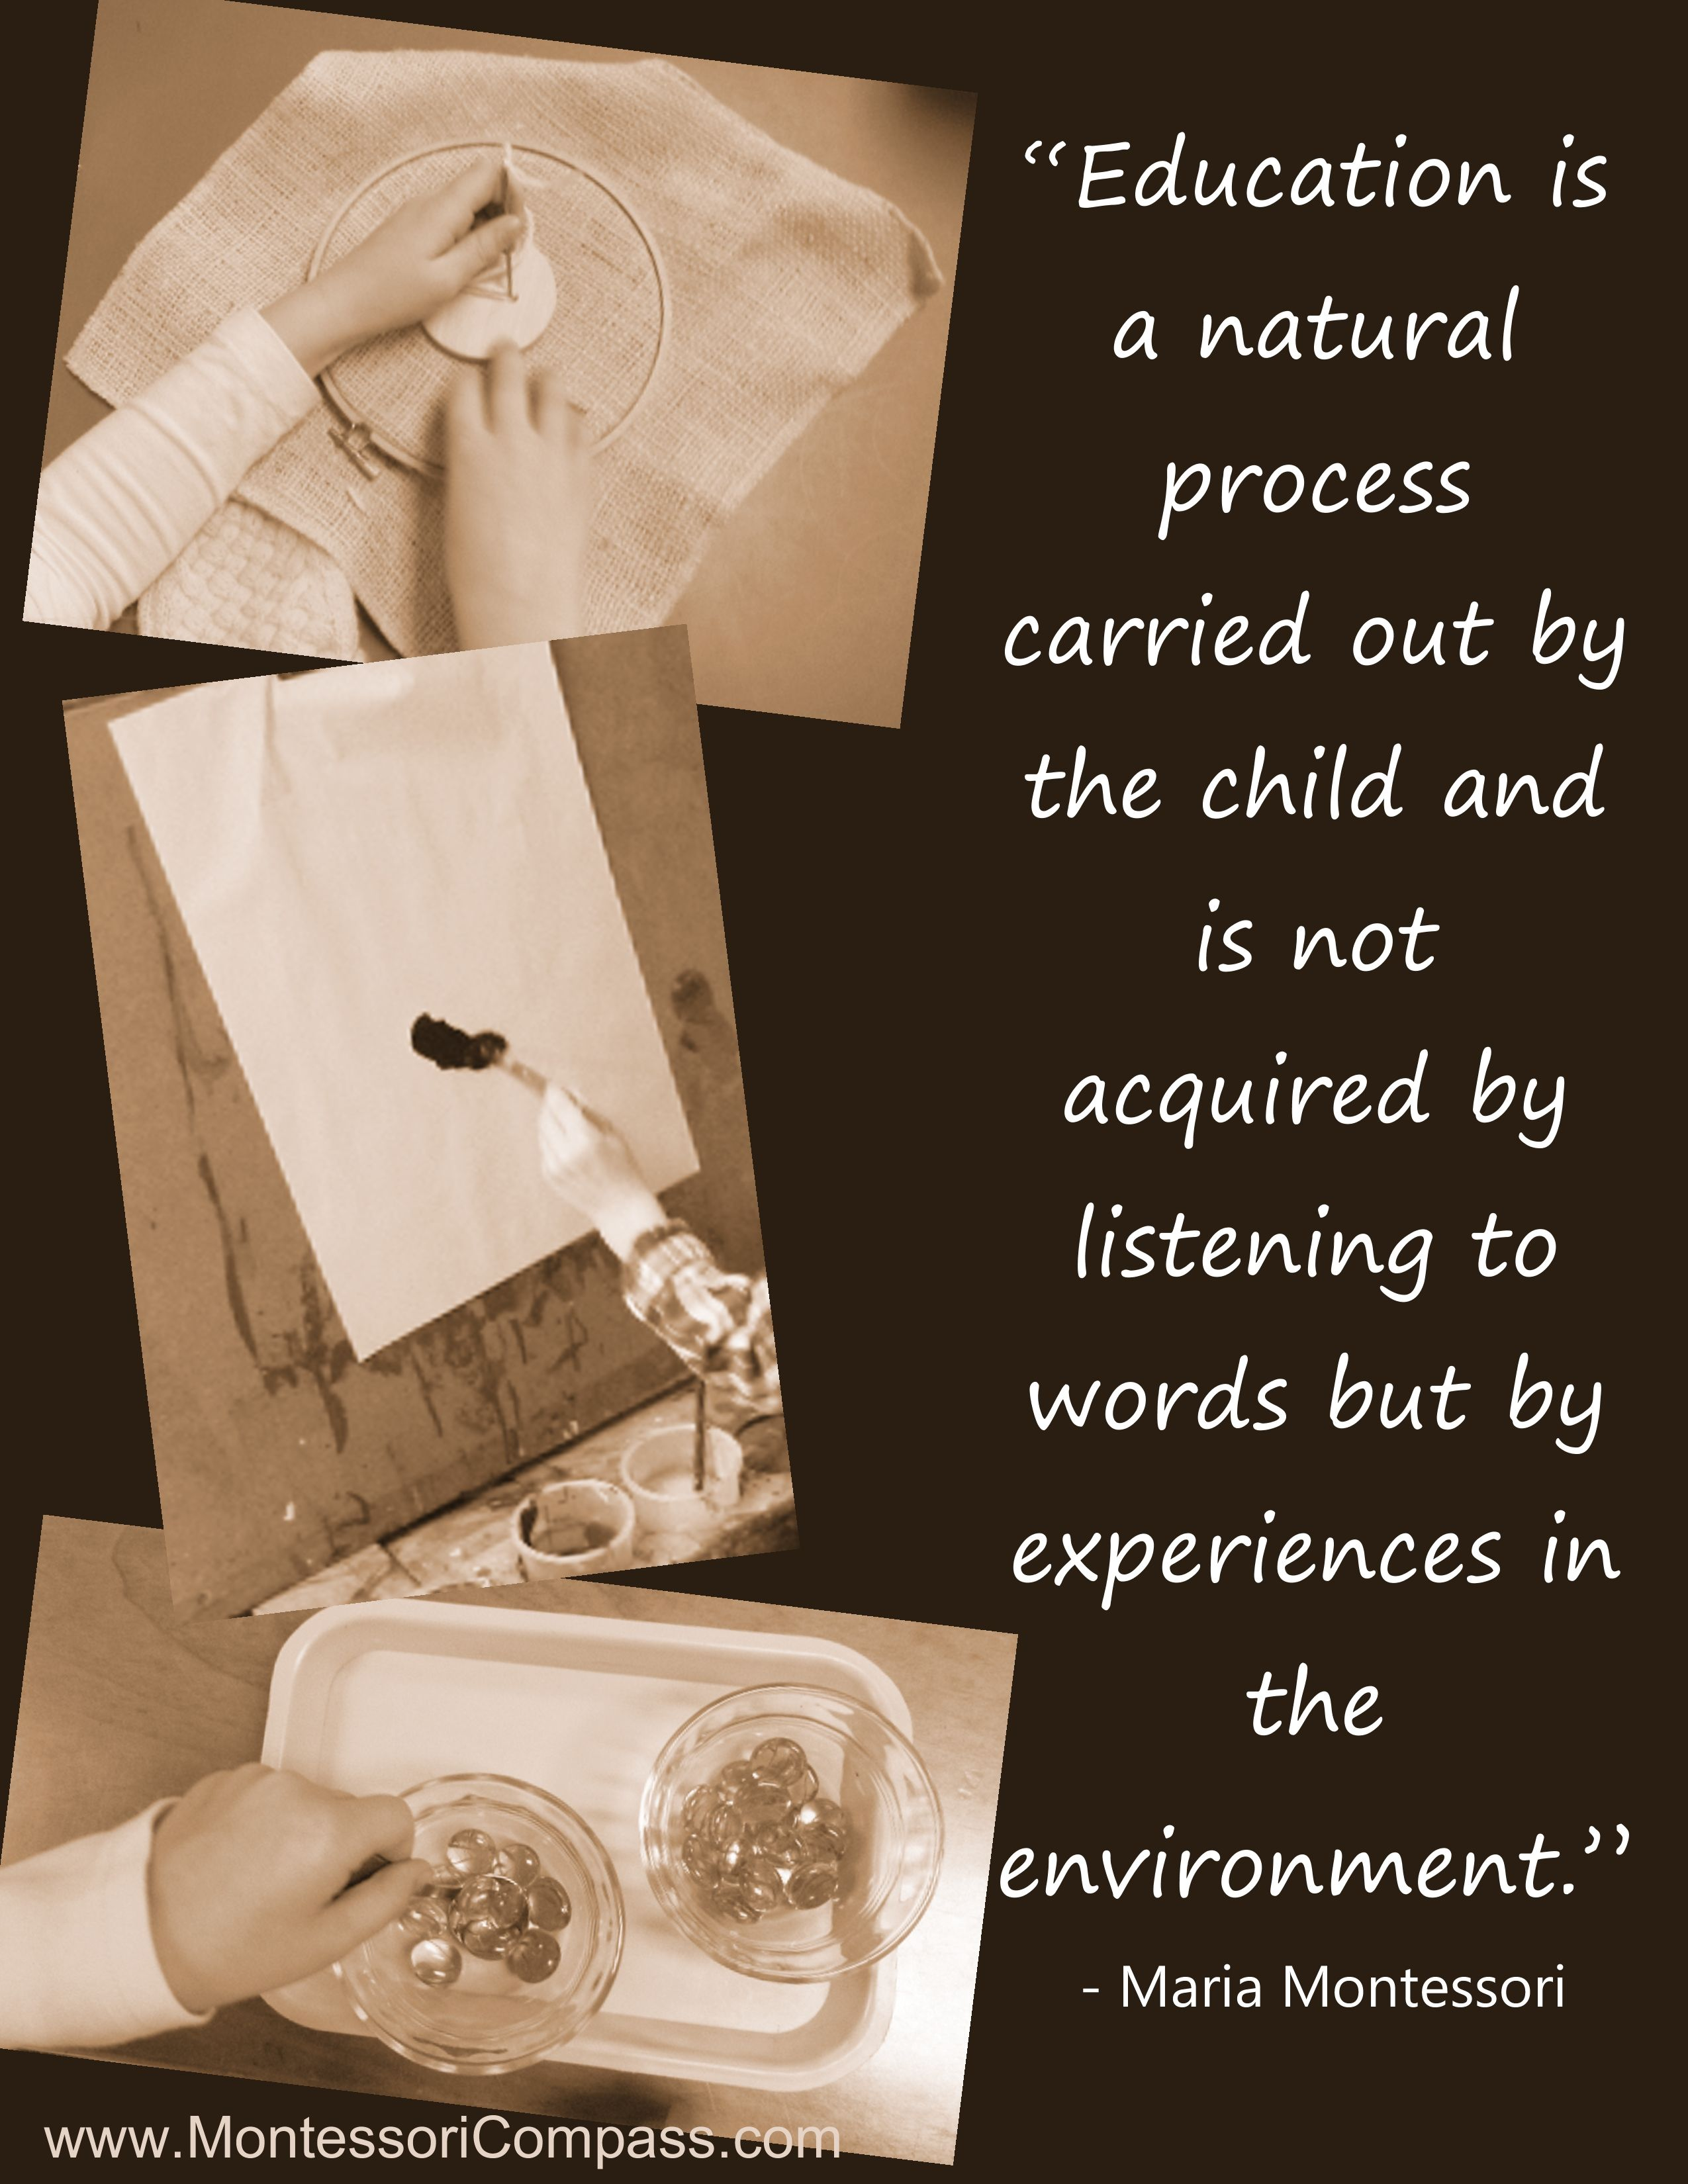 Quote By Maria Montessori Even Though I Think Some Of Her